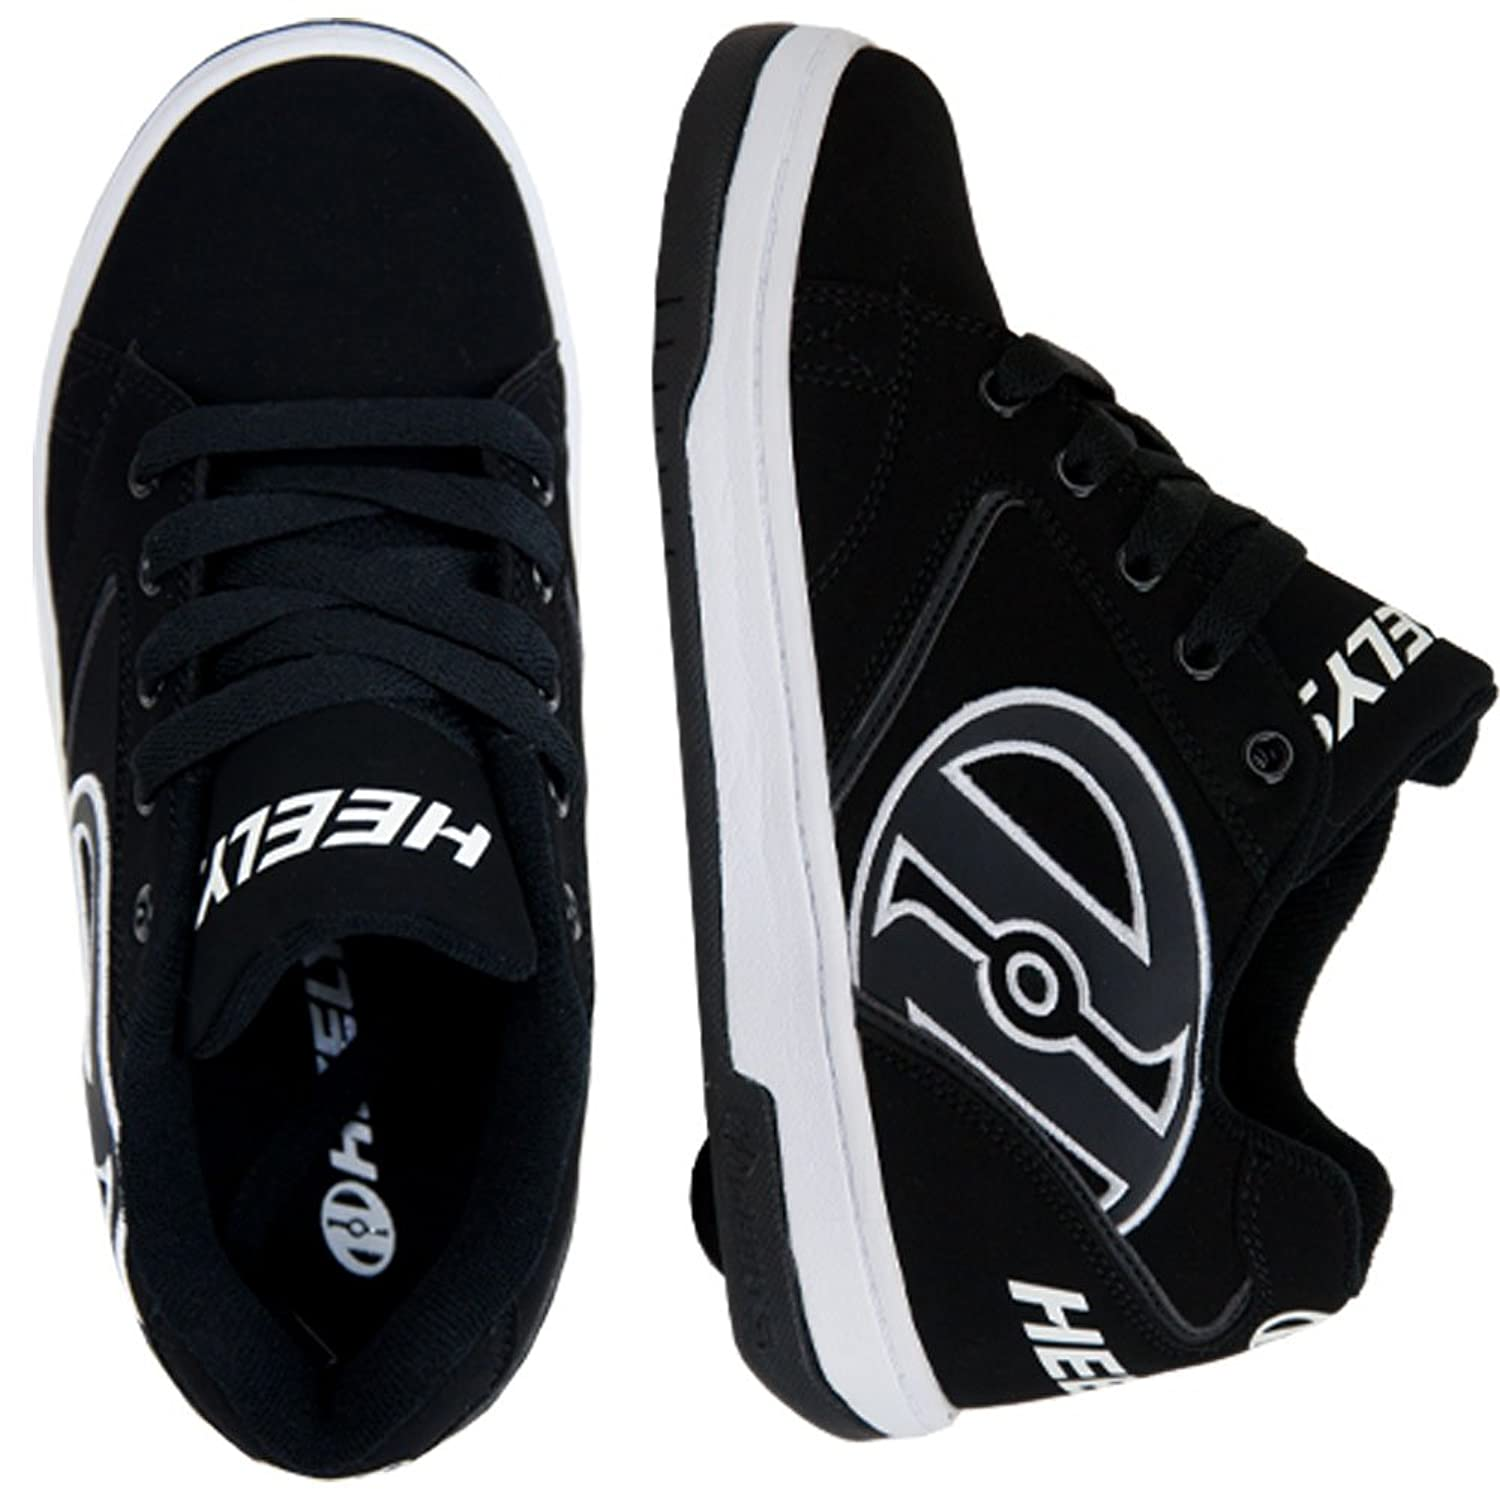 Heelys Propel 2.0 Youth Shoes Black/White